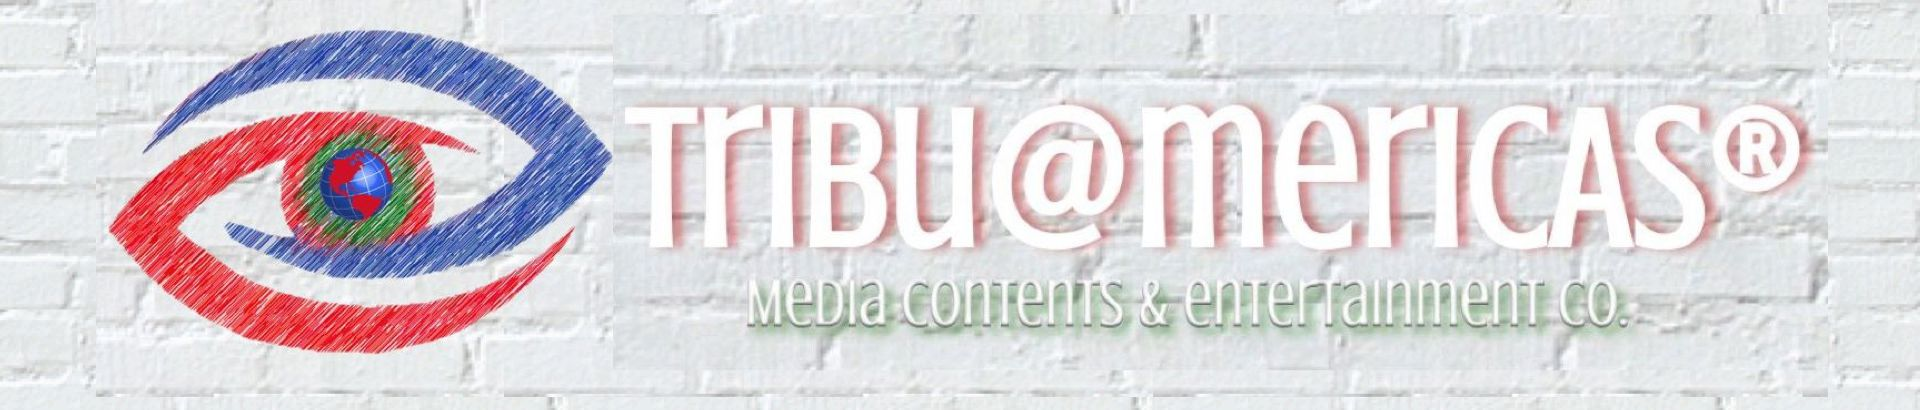 TribuAmericas Media Contents & Entertainment Co.